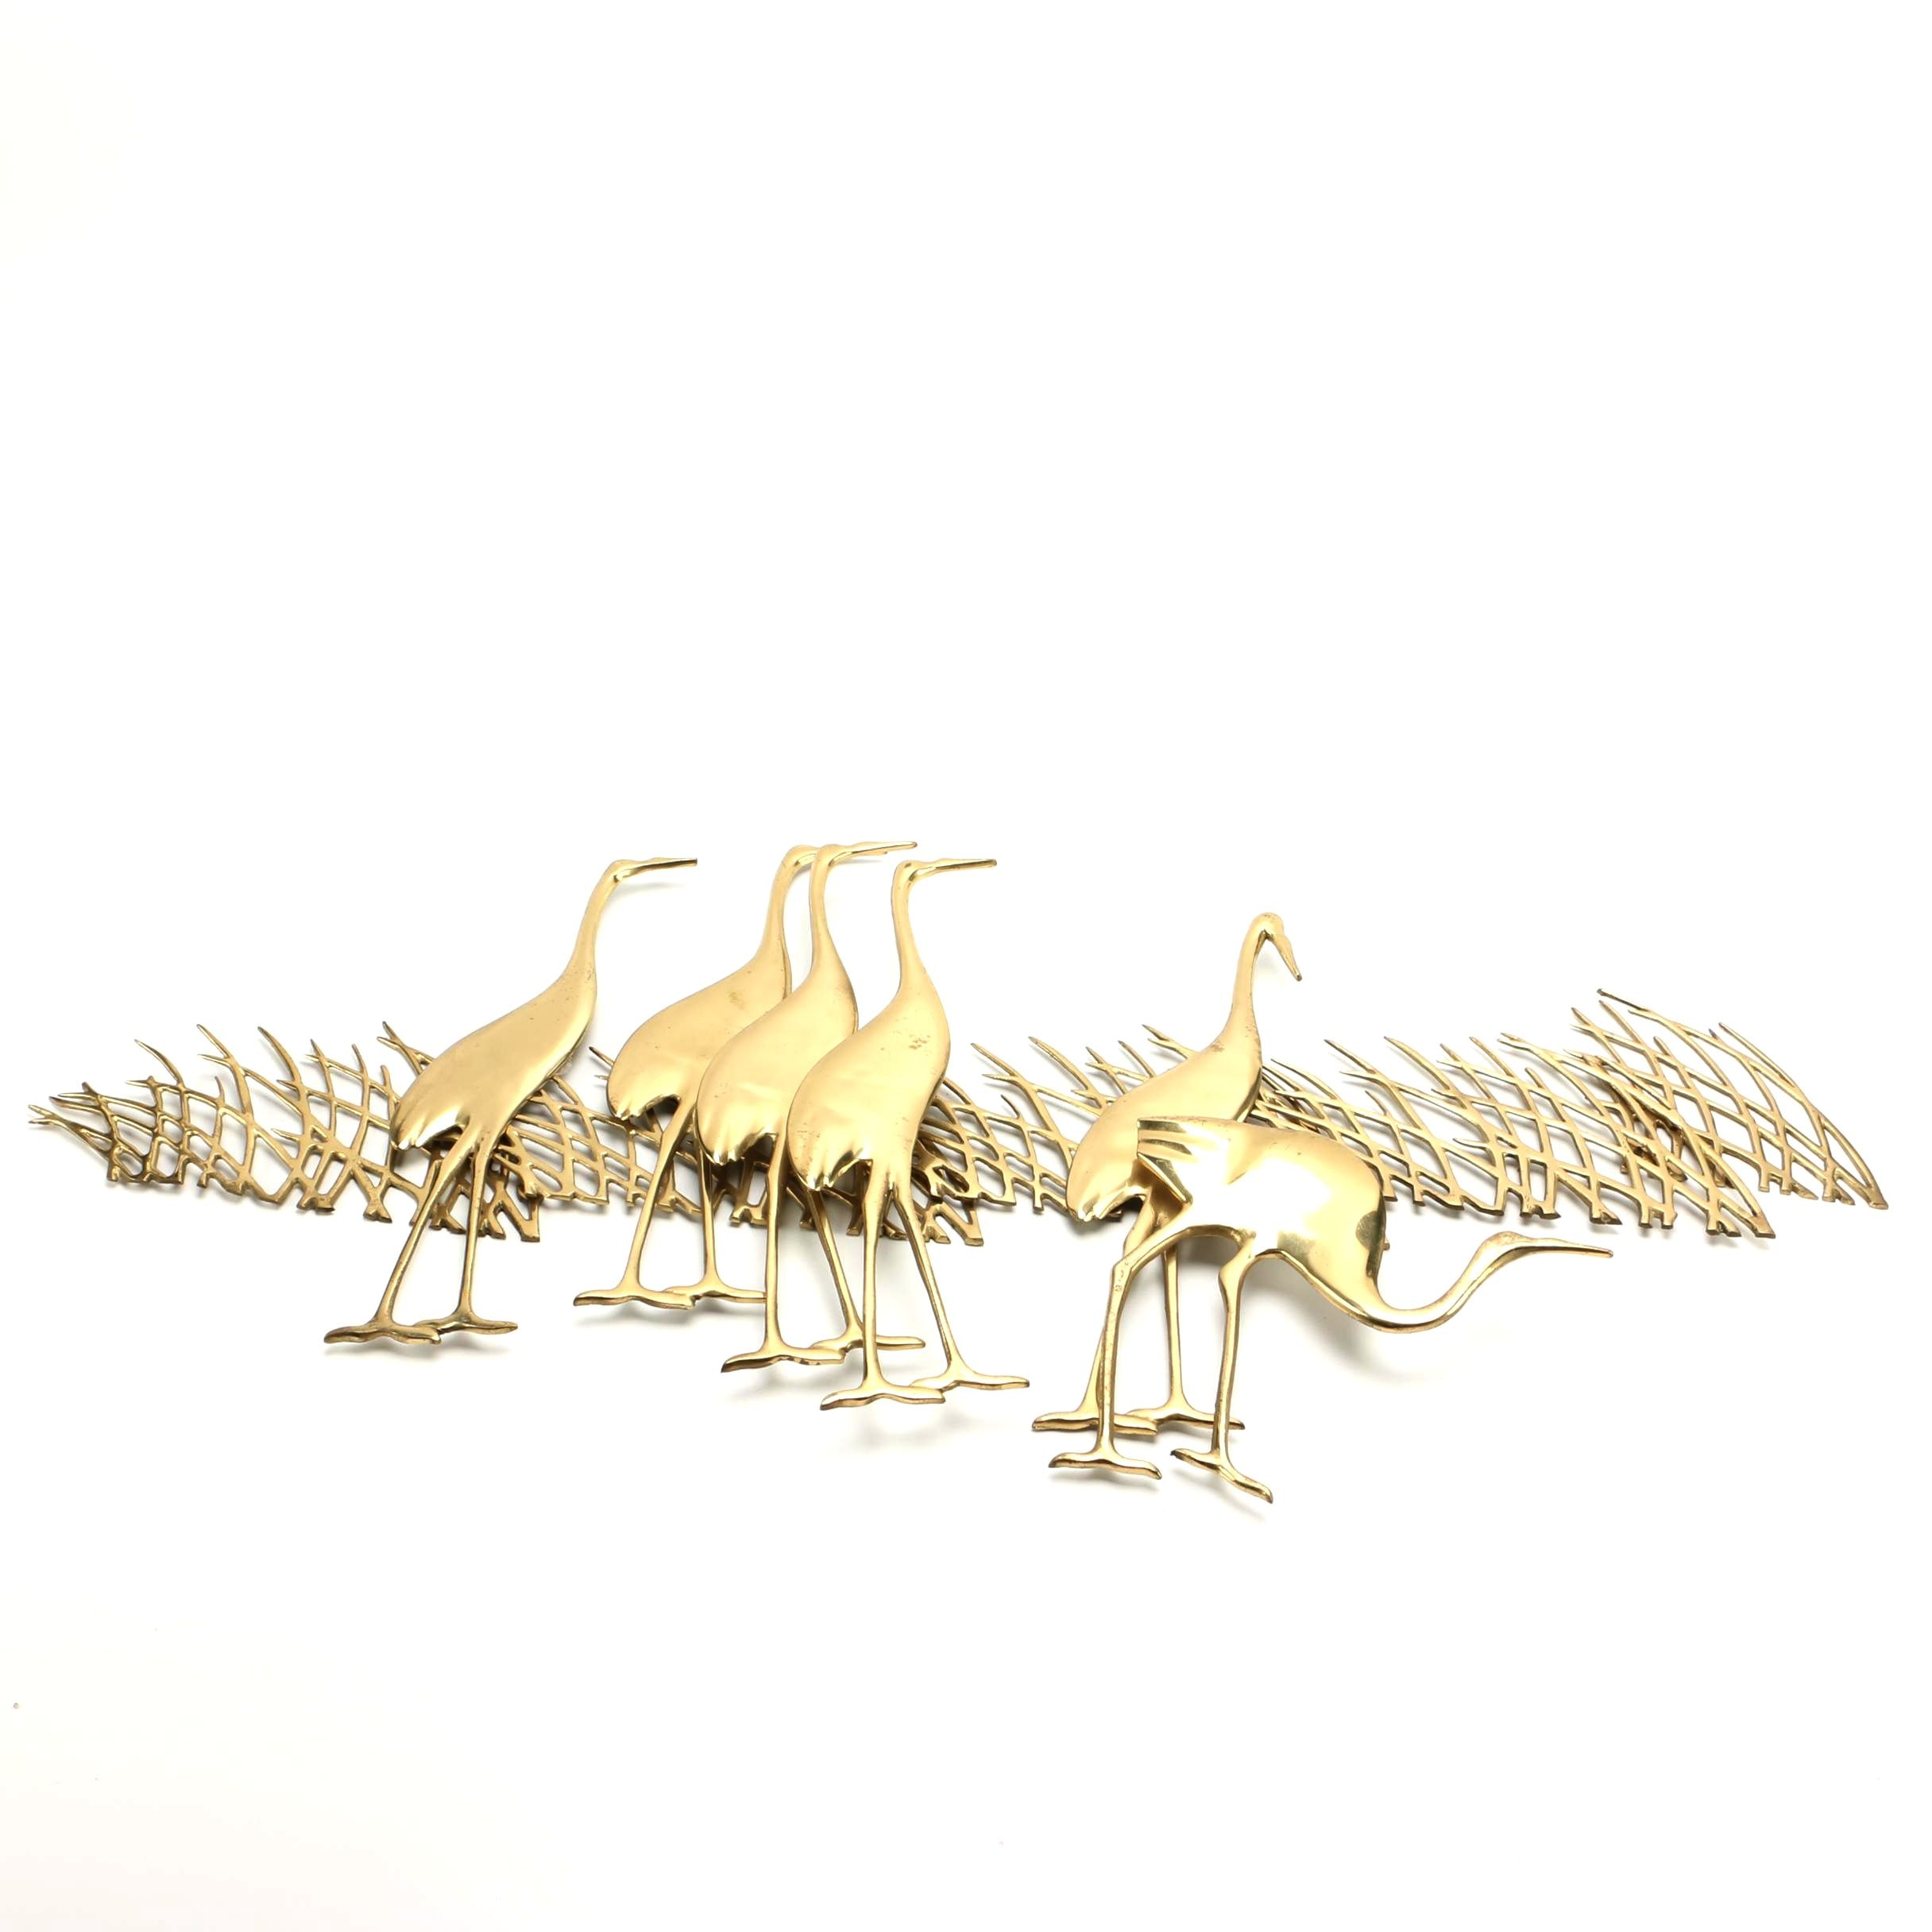 Brass Wall Hanging Sculpture of Cranes